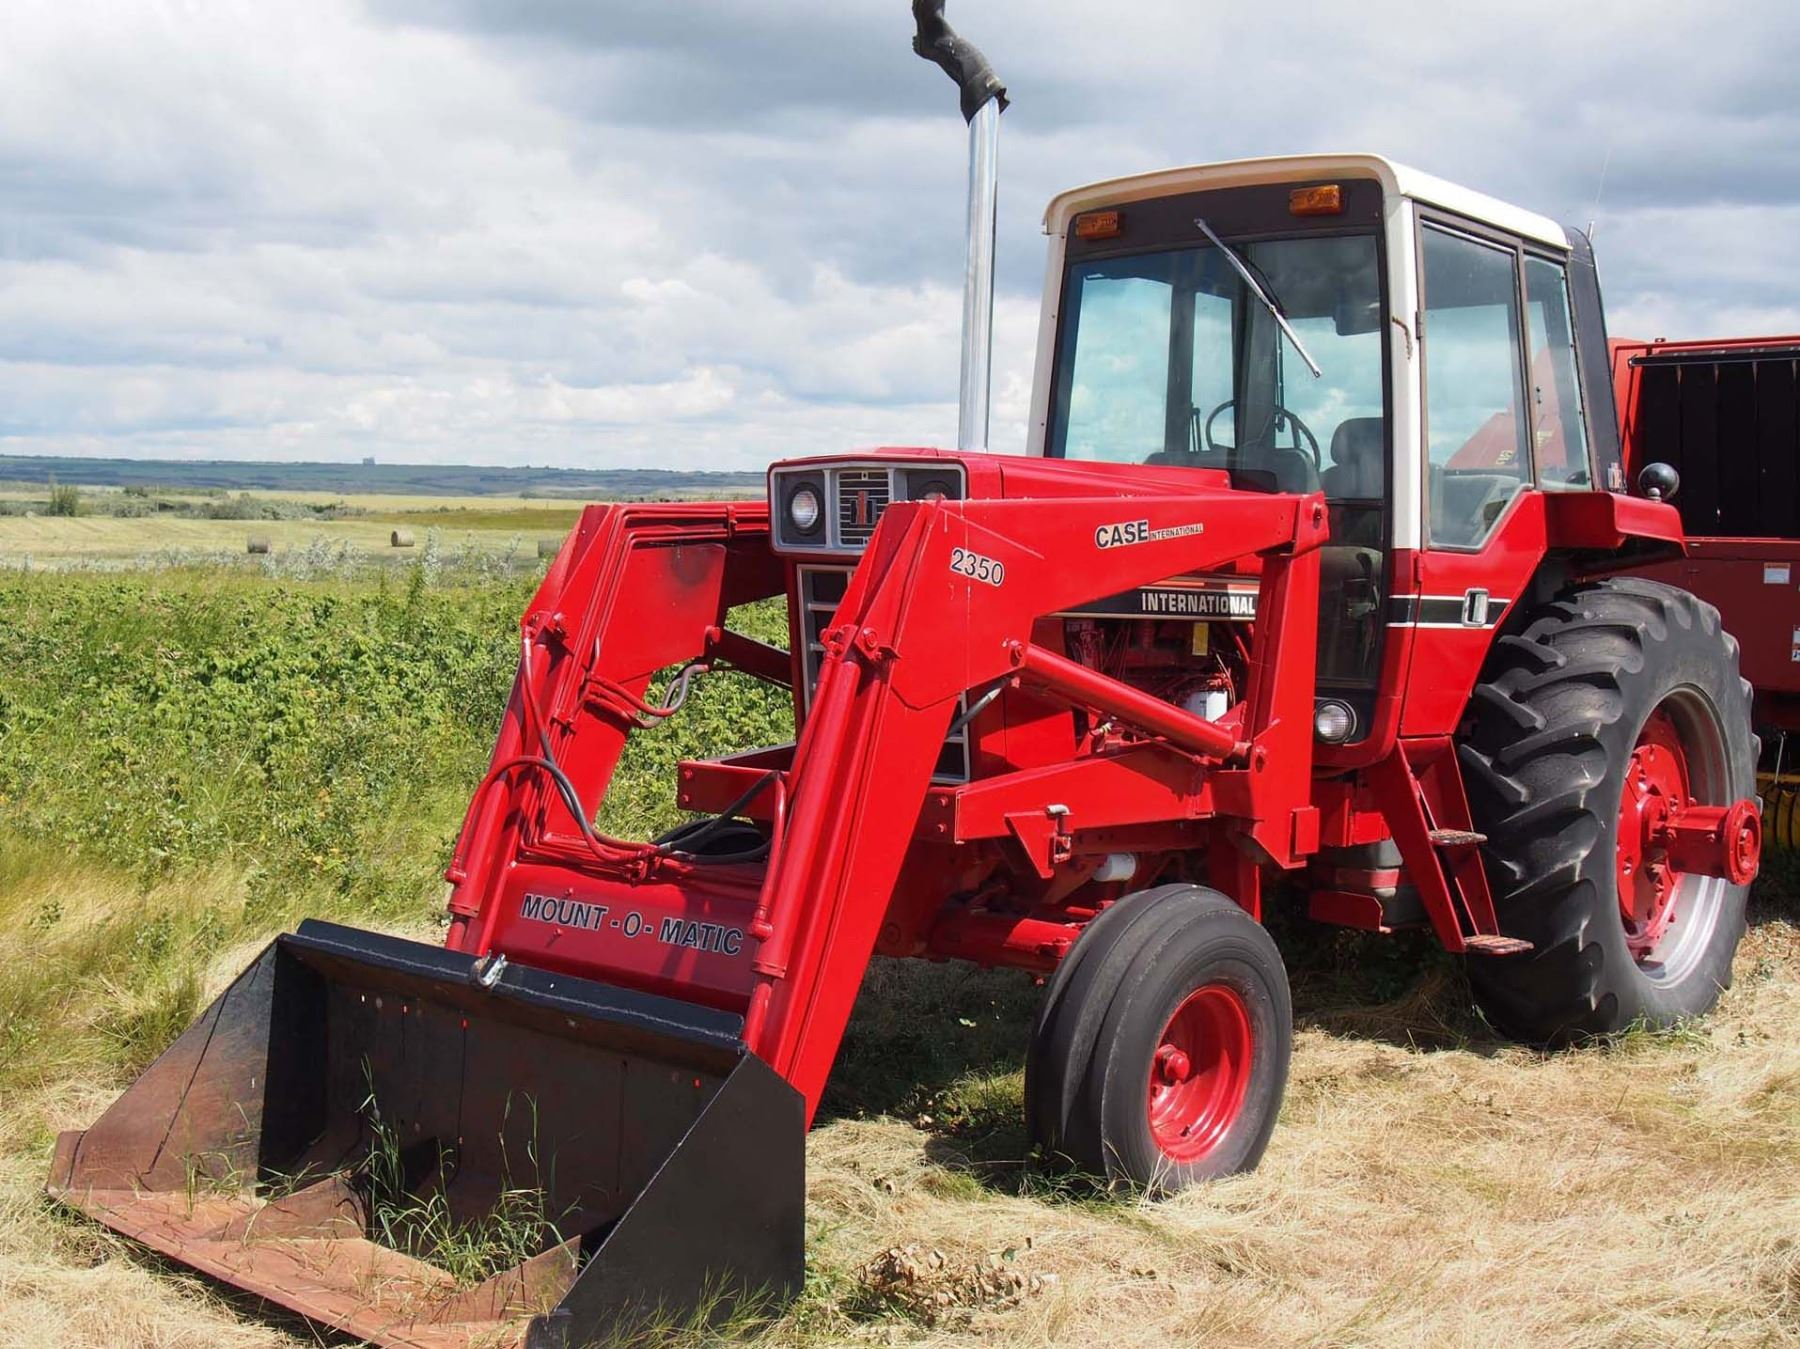 ... Image 2 : 1981 International 1086 Tractor 6075 Hours. S#2610193053367,  2350 Case ...